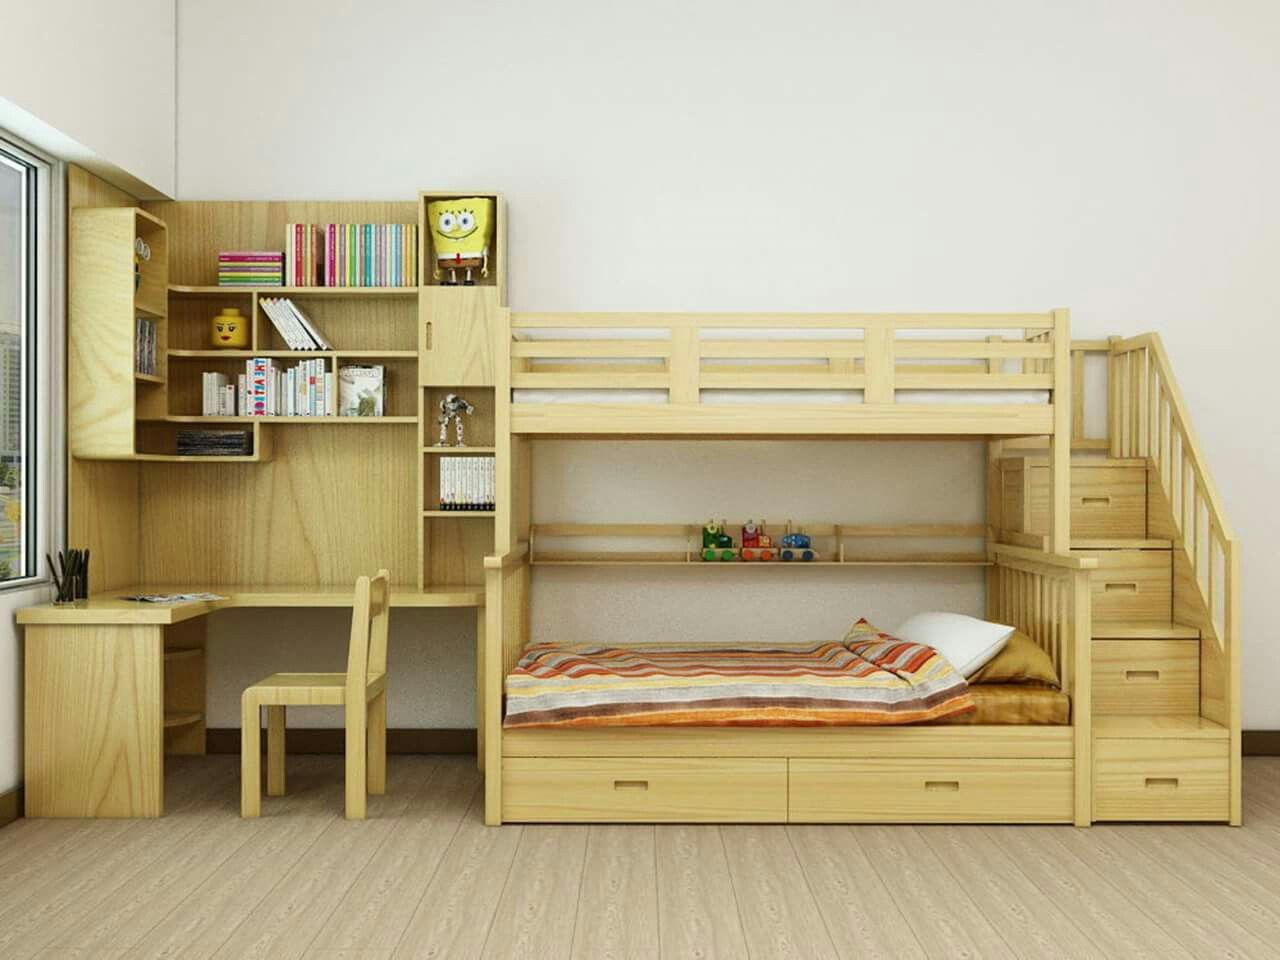 Double loft bed with desk  Pin by Valentin on Детска  Pinterest  Bed Bedroom and Childrens beds